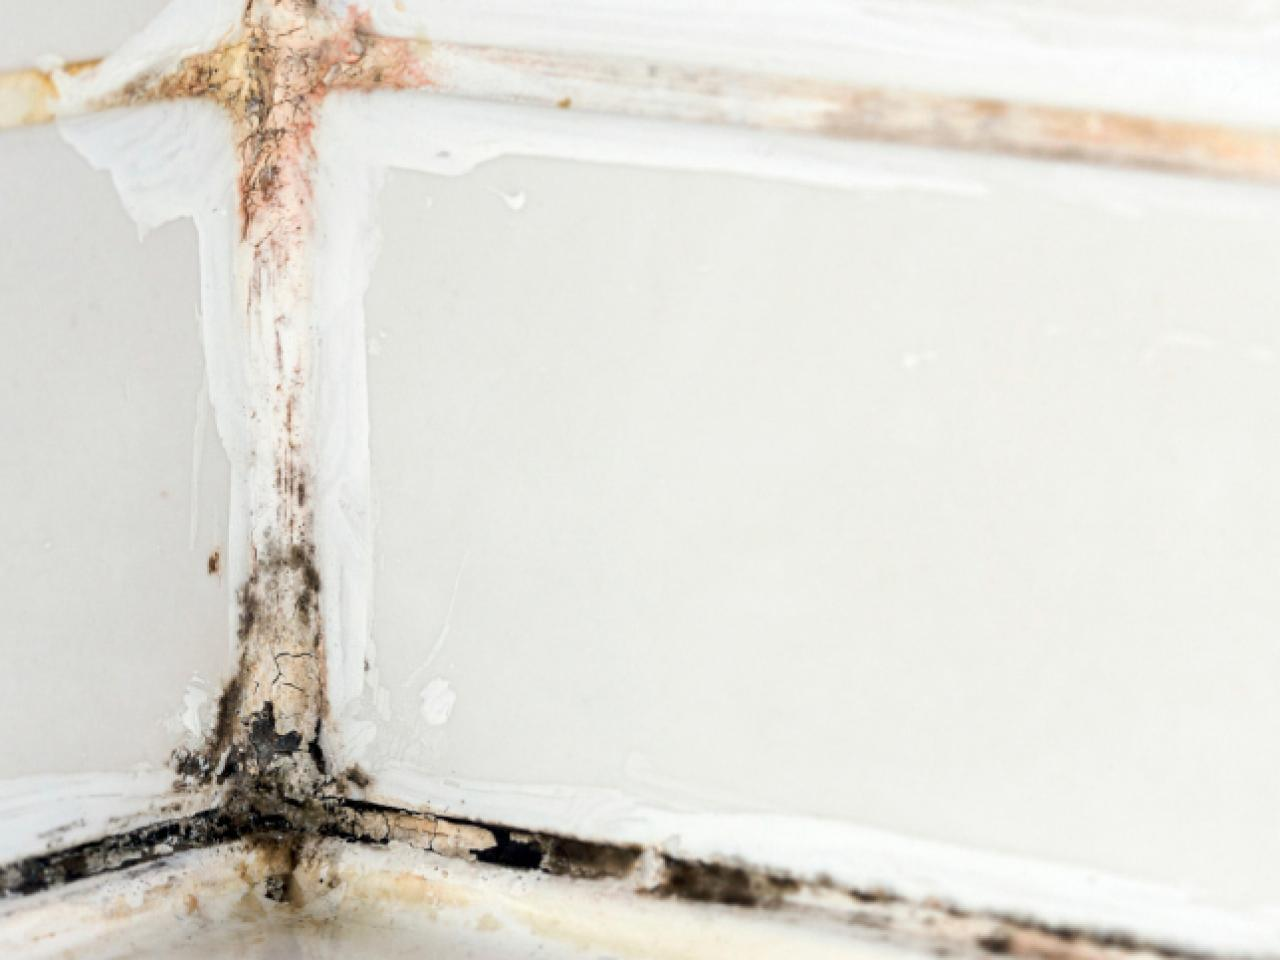 Mold In Bathroom Causes how to remove black mold | hgtv